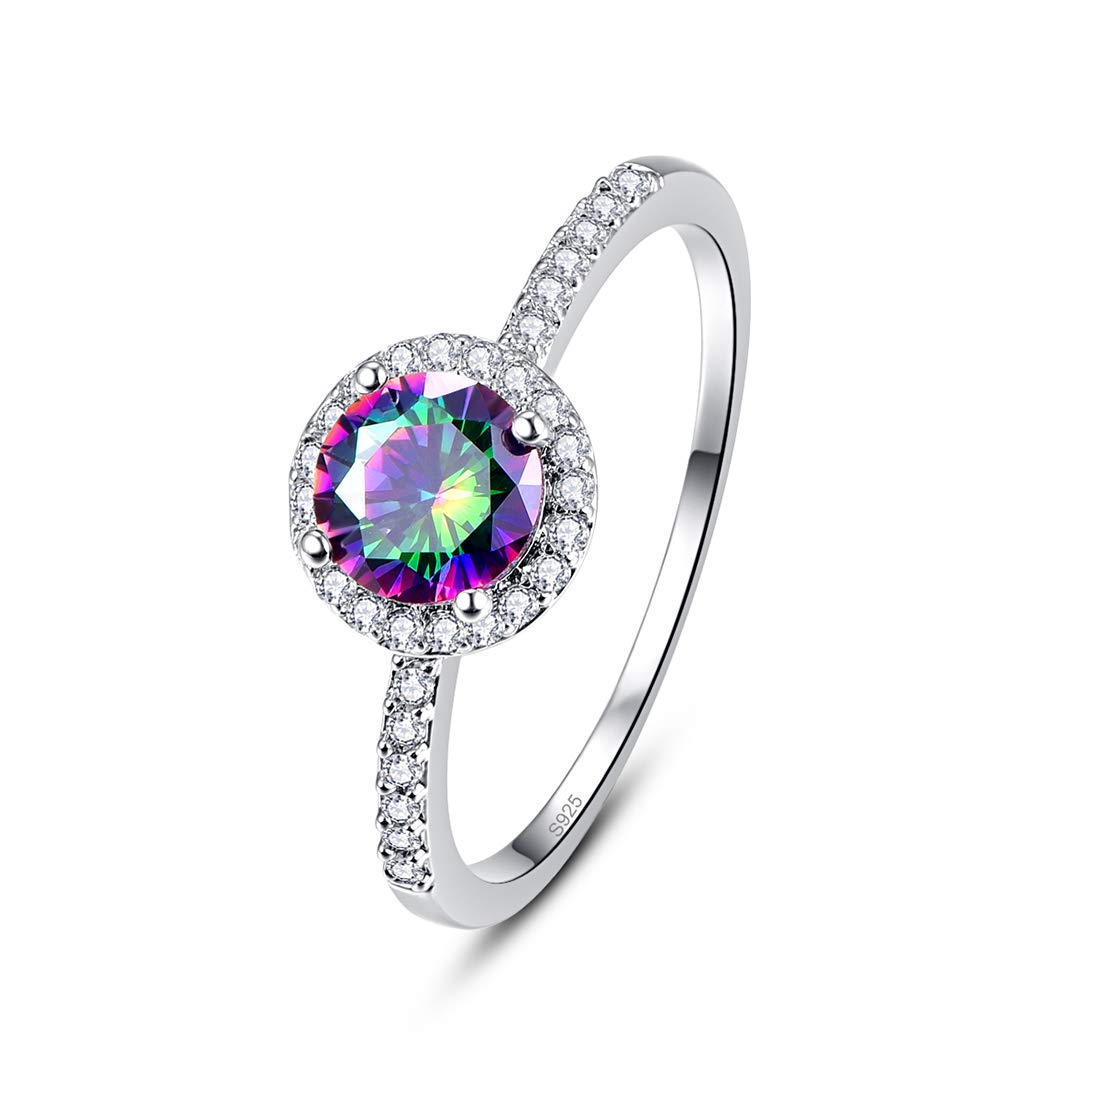 Momius 925 Silver Created Rainbow Topaz Brilliant Round Cut Halo Wedding Band Engagement Ring for Women